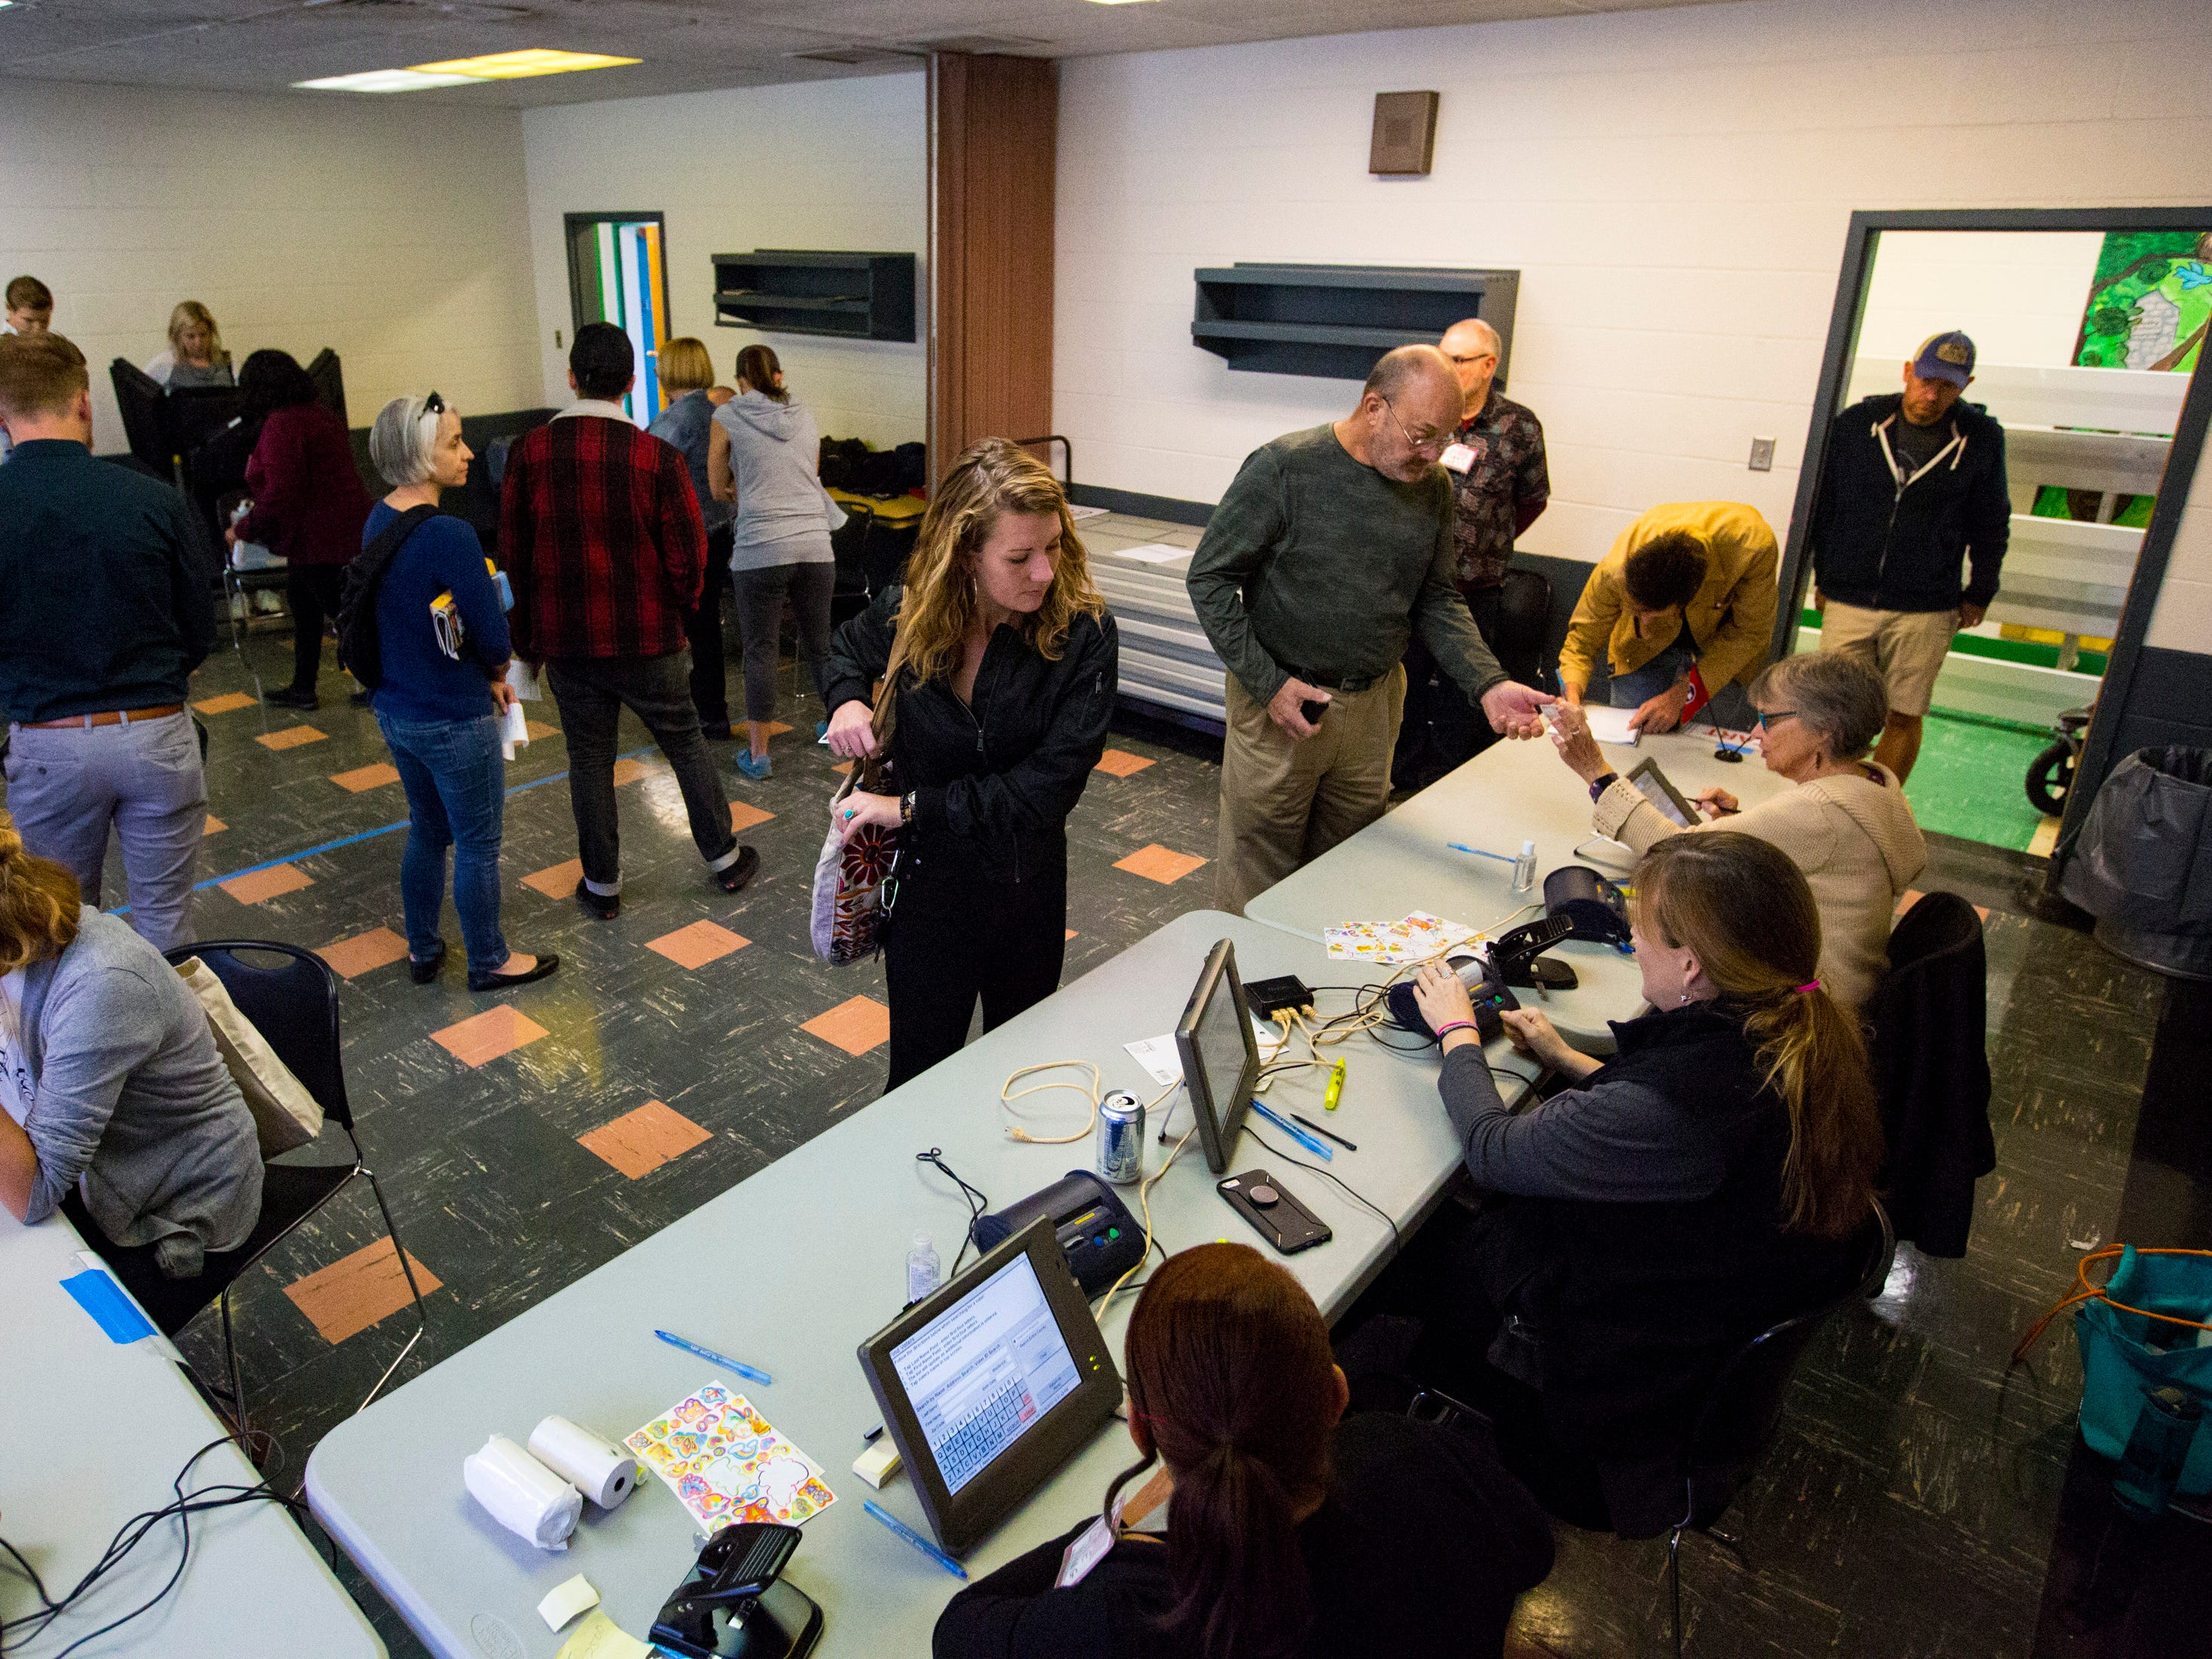 Voters check in at the Shelby Park Community Center polling place in Nashville on Tuesday, Nov. 6, 2018.